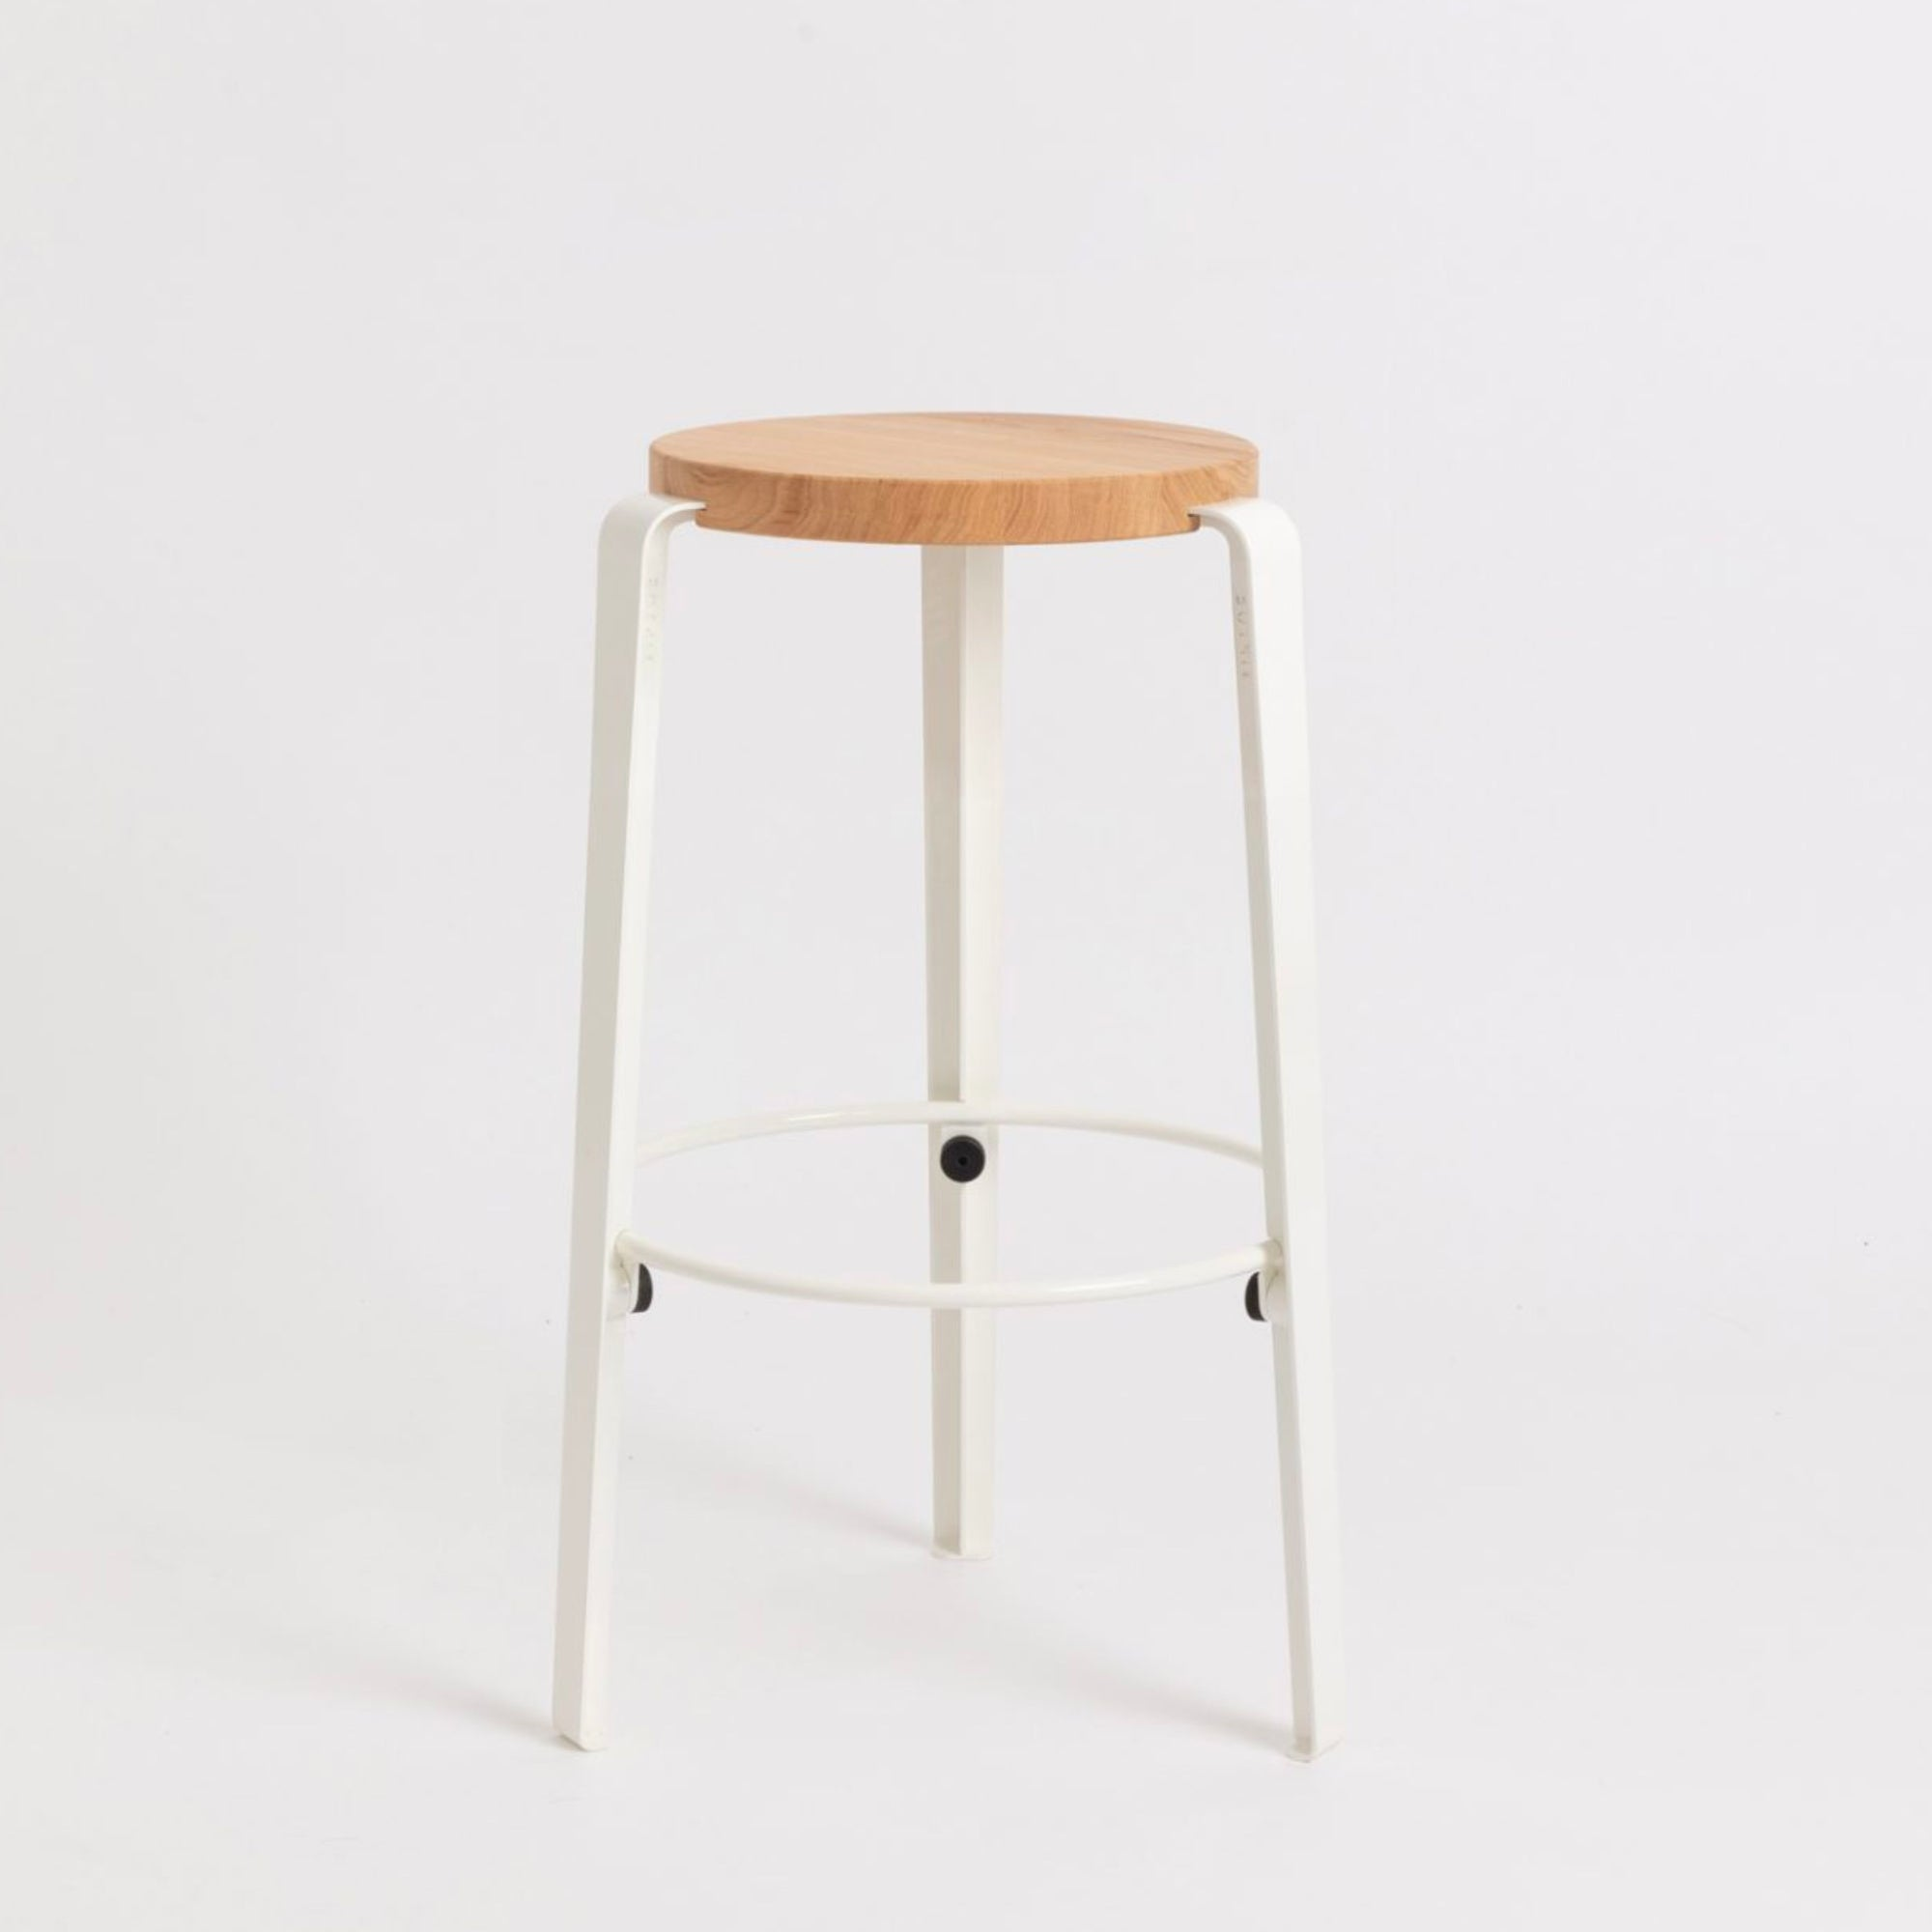 Tiptoe MI LOU bar stool 66, solid oak